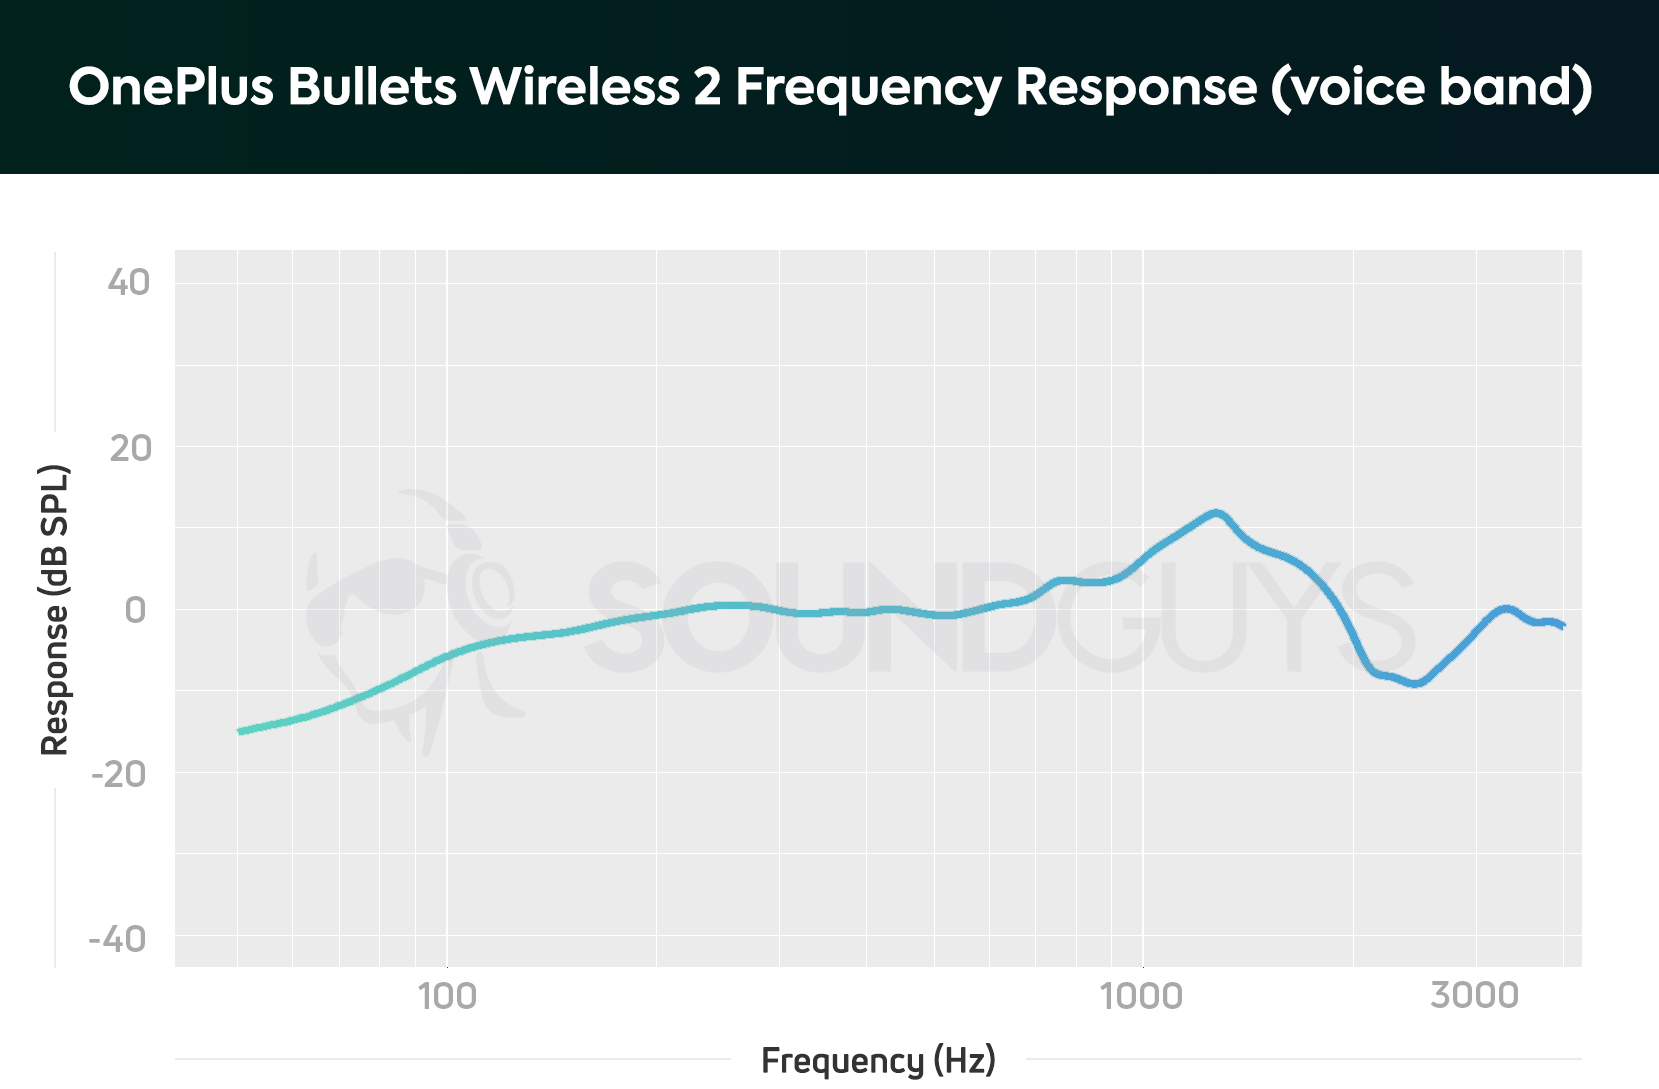 hight resolution of oneplus bullets wireless 2 microphone response chart limited to the human voice band